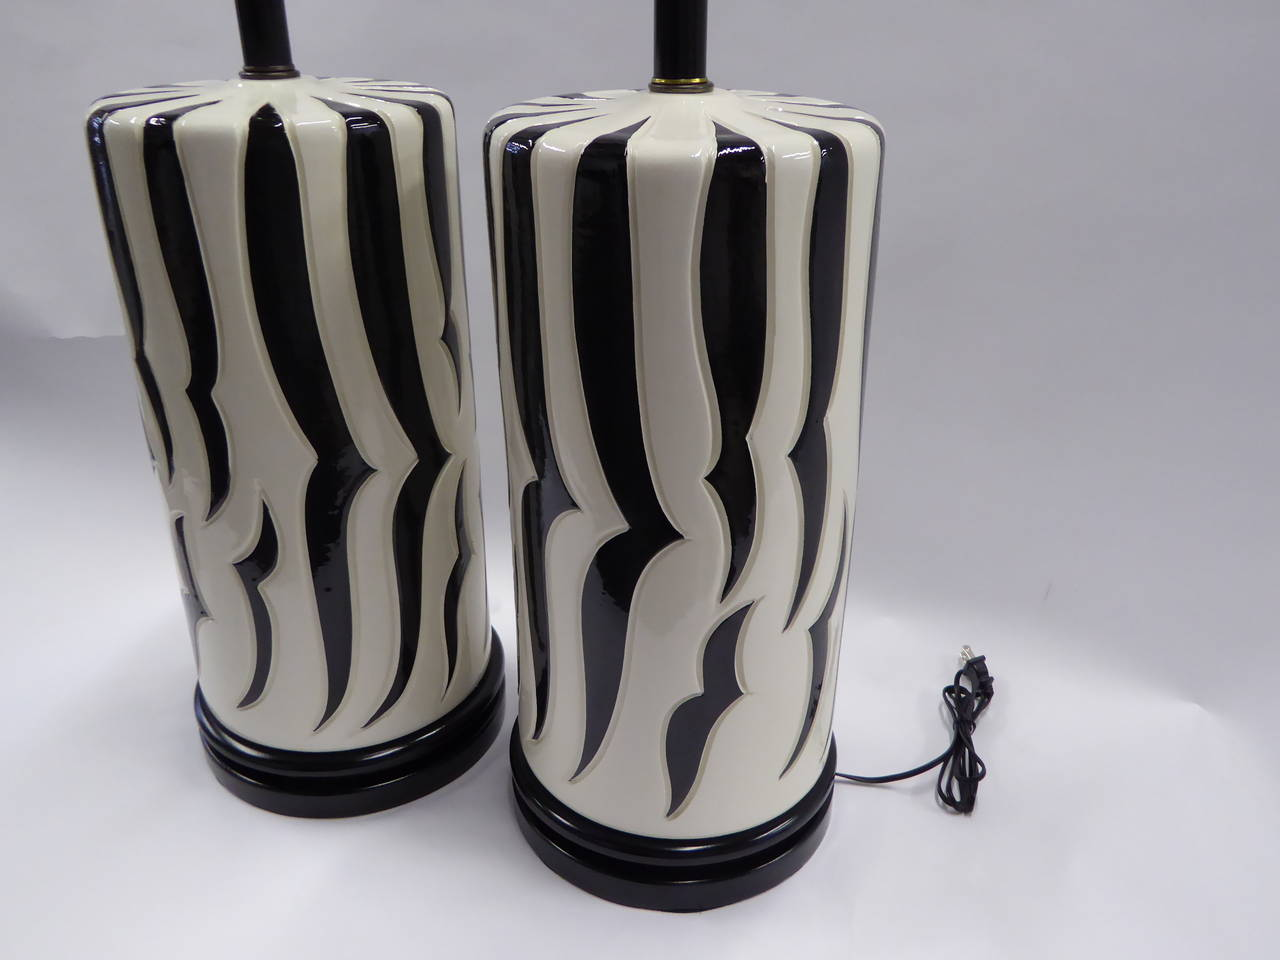 Monumental Tony Duquette Style Zebra Stripe Table Lamps In Excellent Condition For Sale In Miami, FL